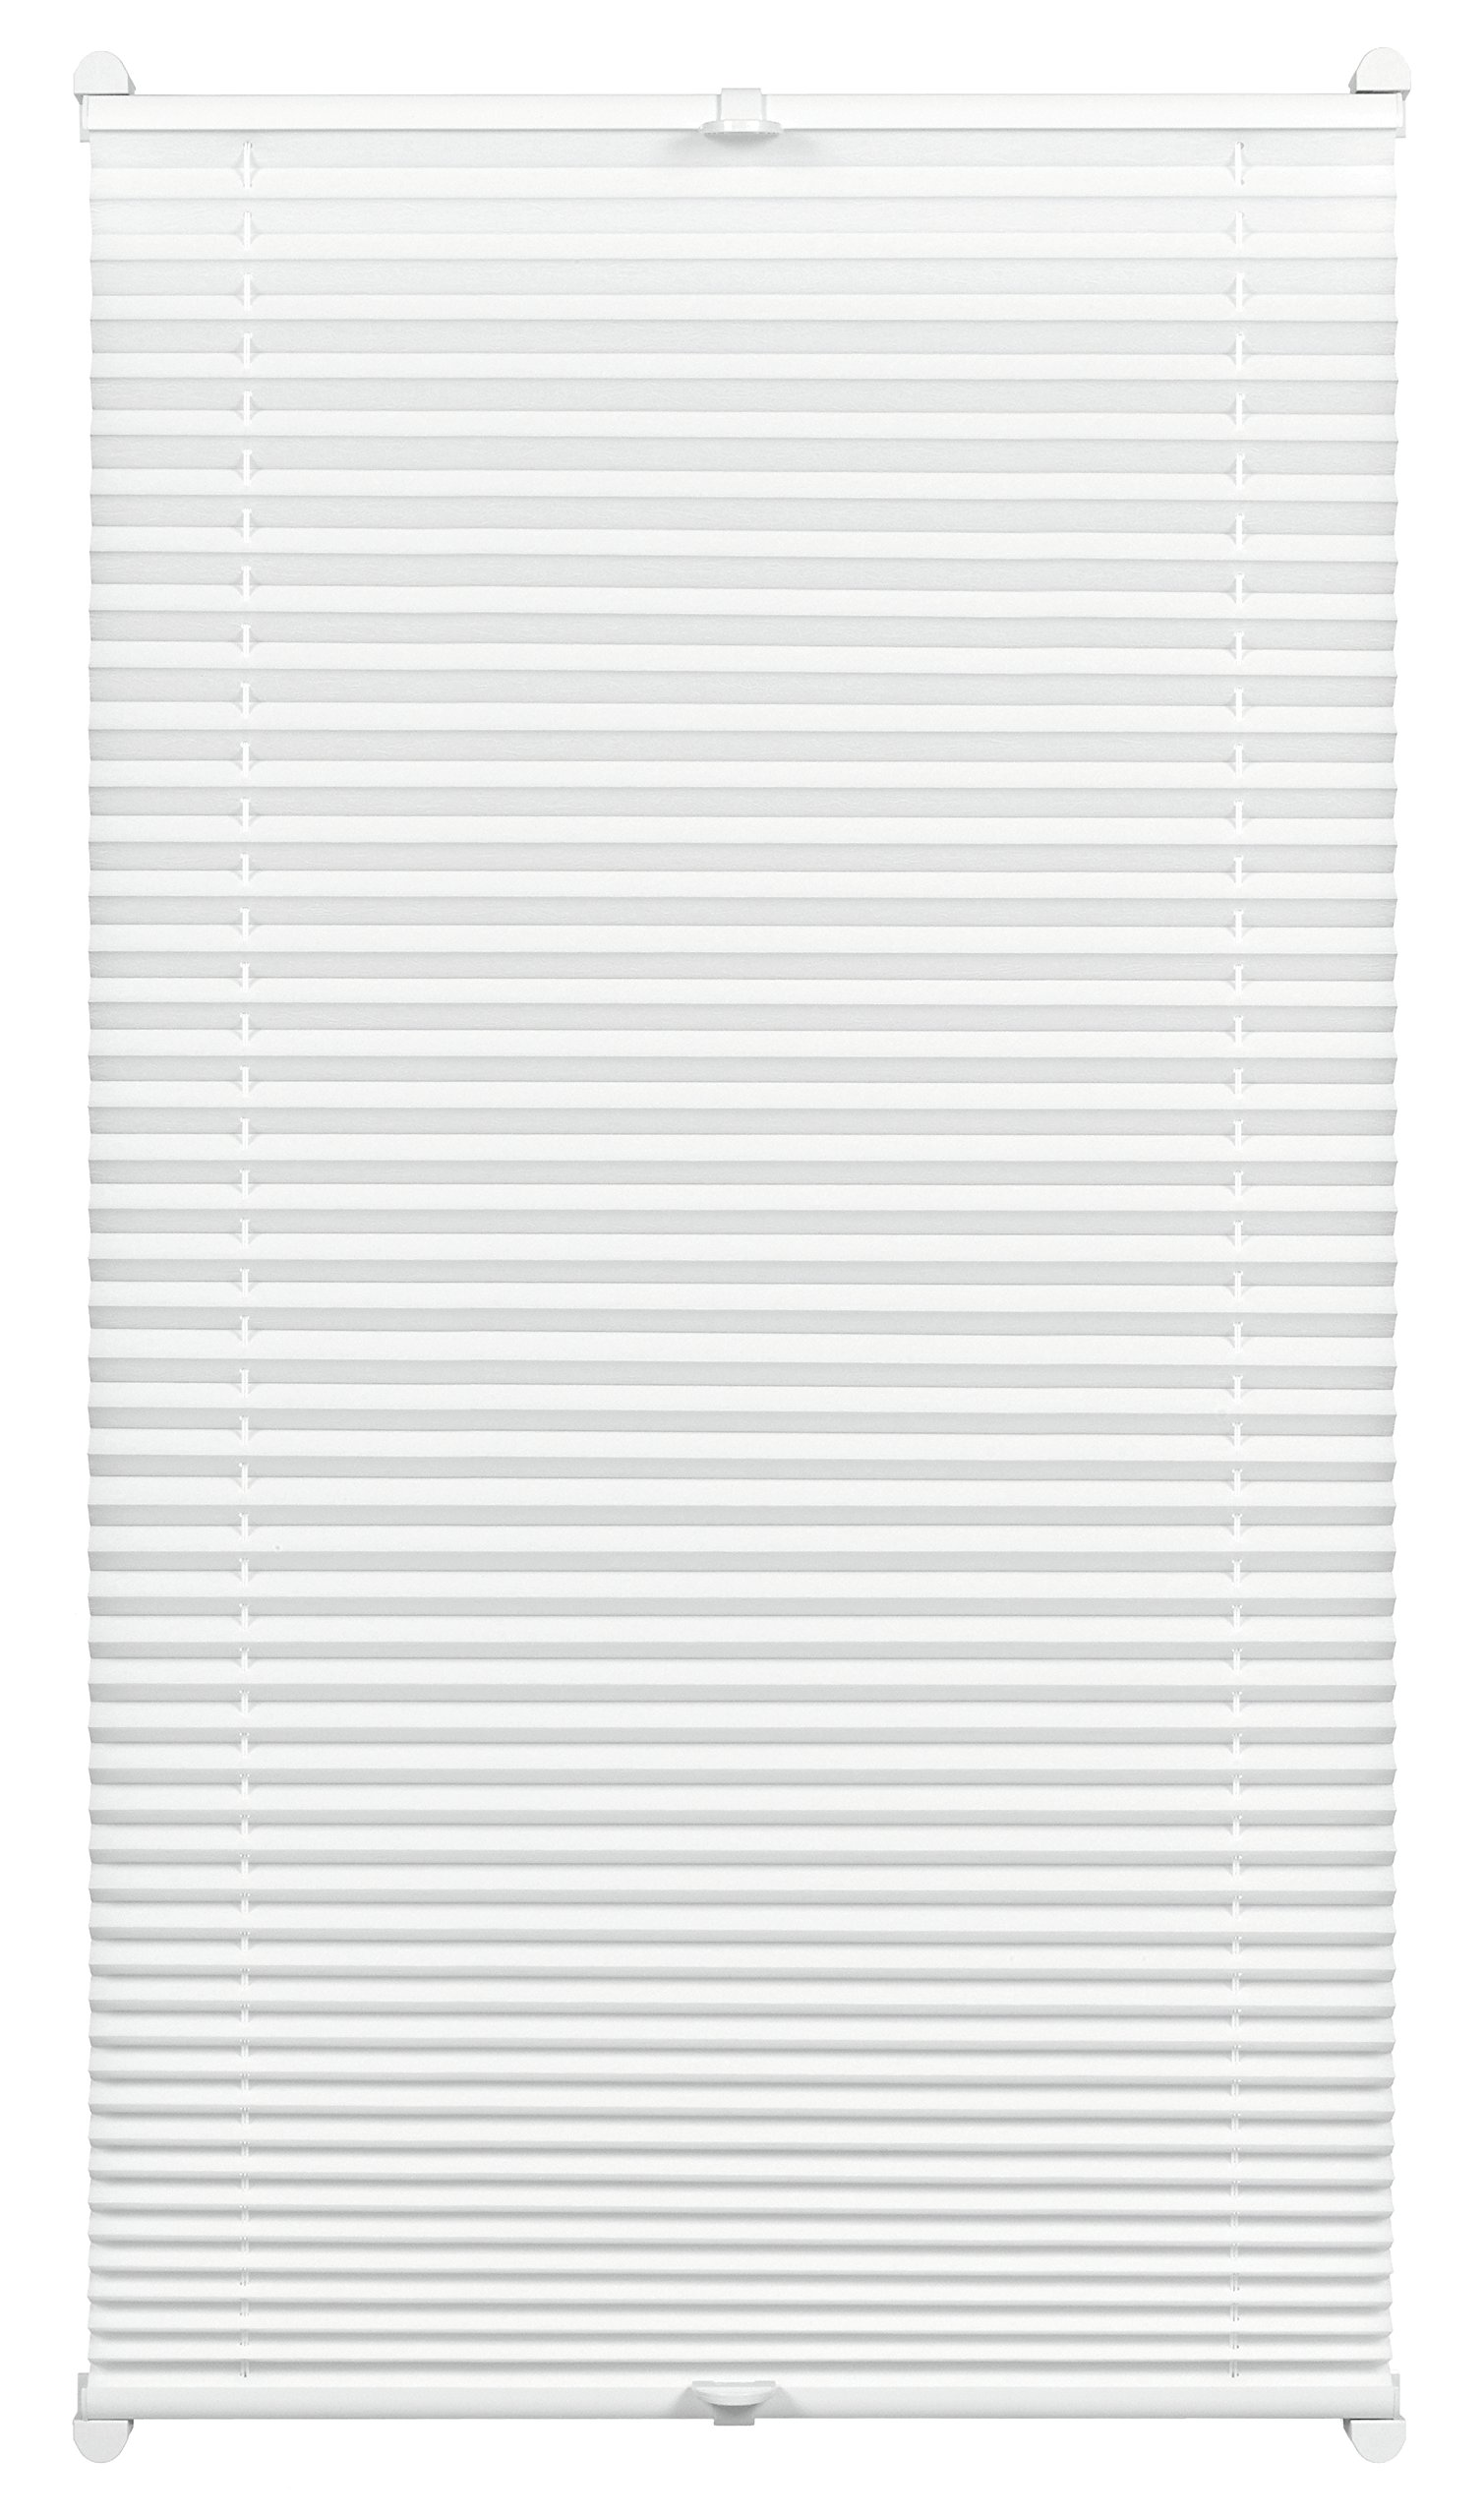 Gardinia Pleated with a Thermal Back for Clamping, High Light Reflection, Energy Saving, Mounting Kit Included, EASYFIX Thermo-Pleated Blind with Two Operating Rails, White, 40 x 130 cm (WxH) by Gardinia